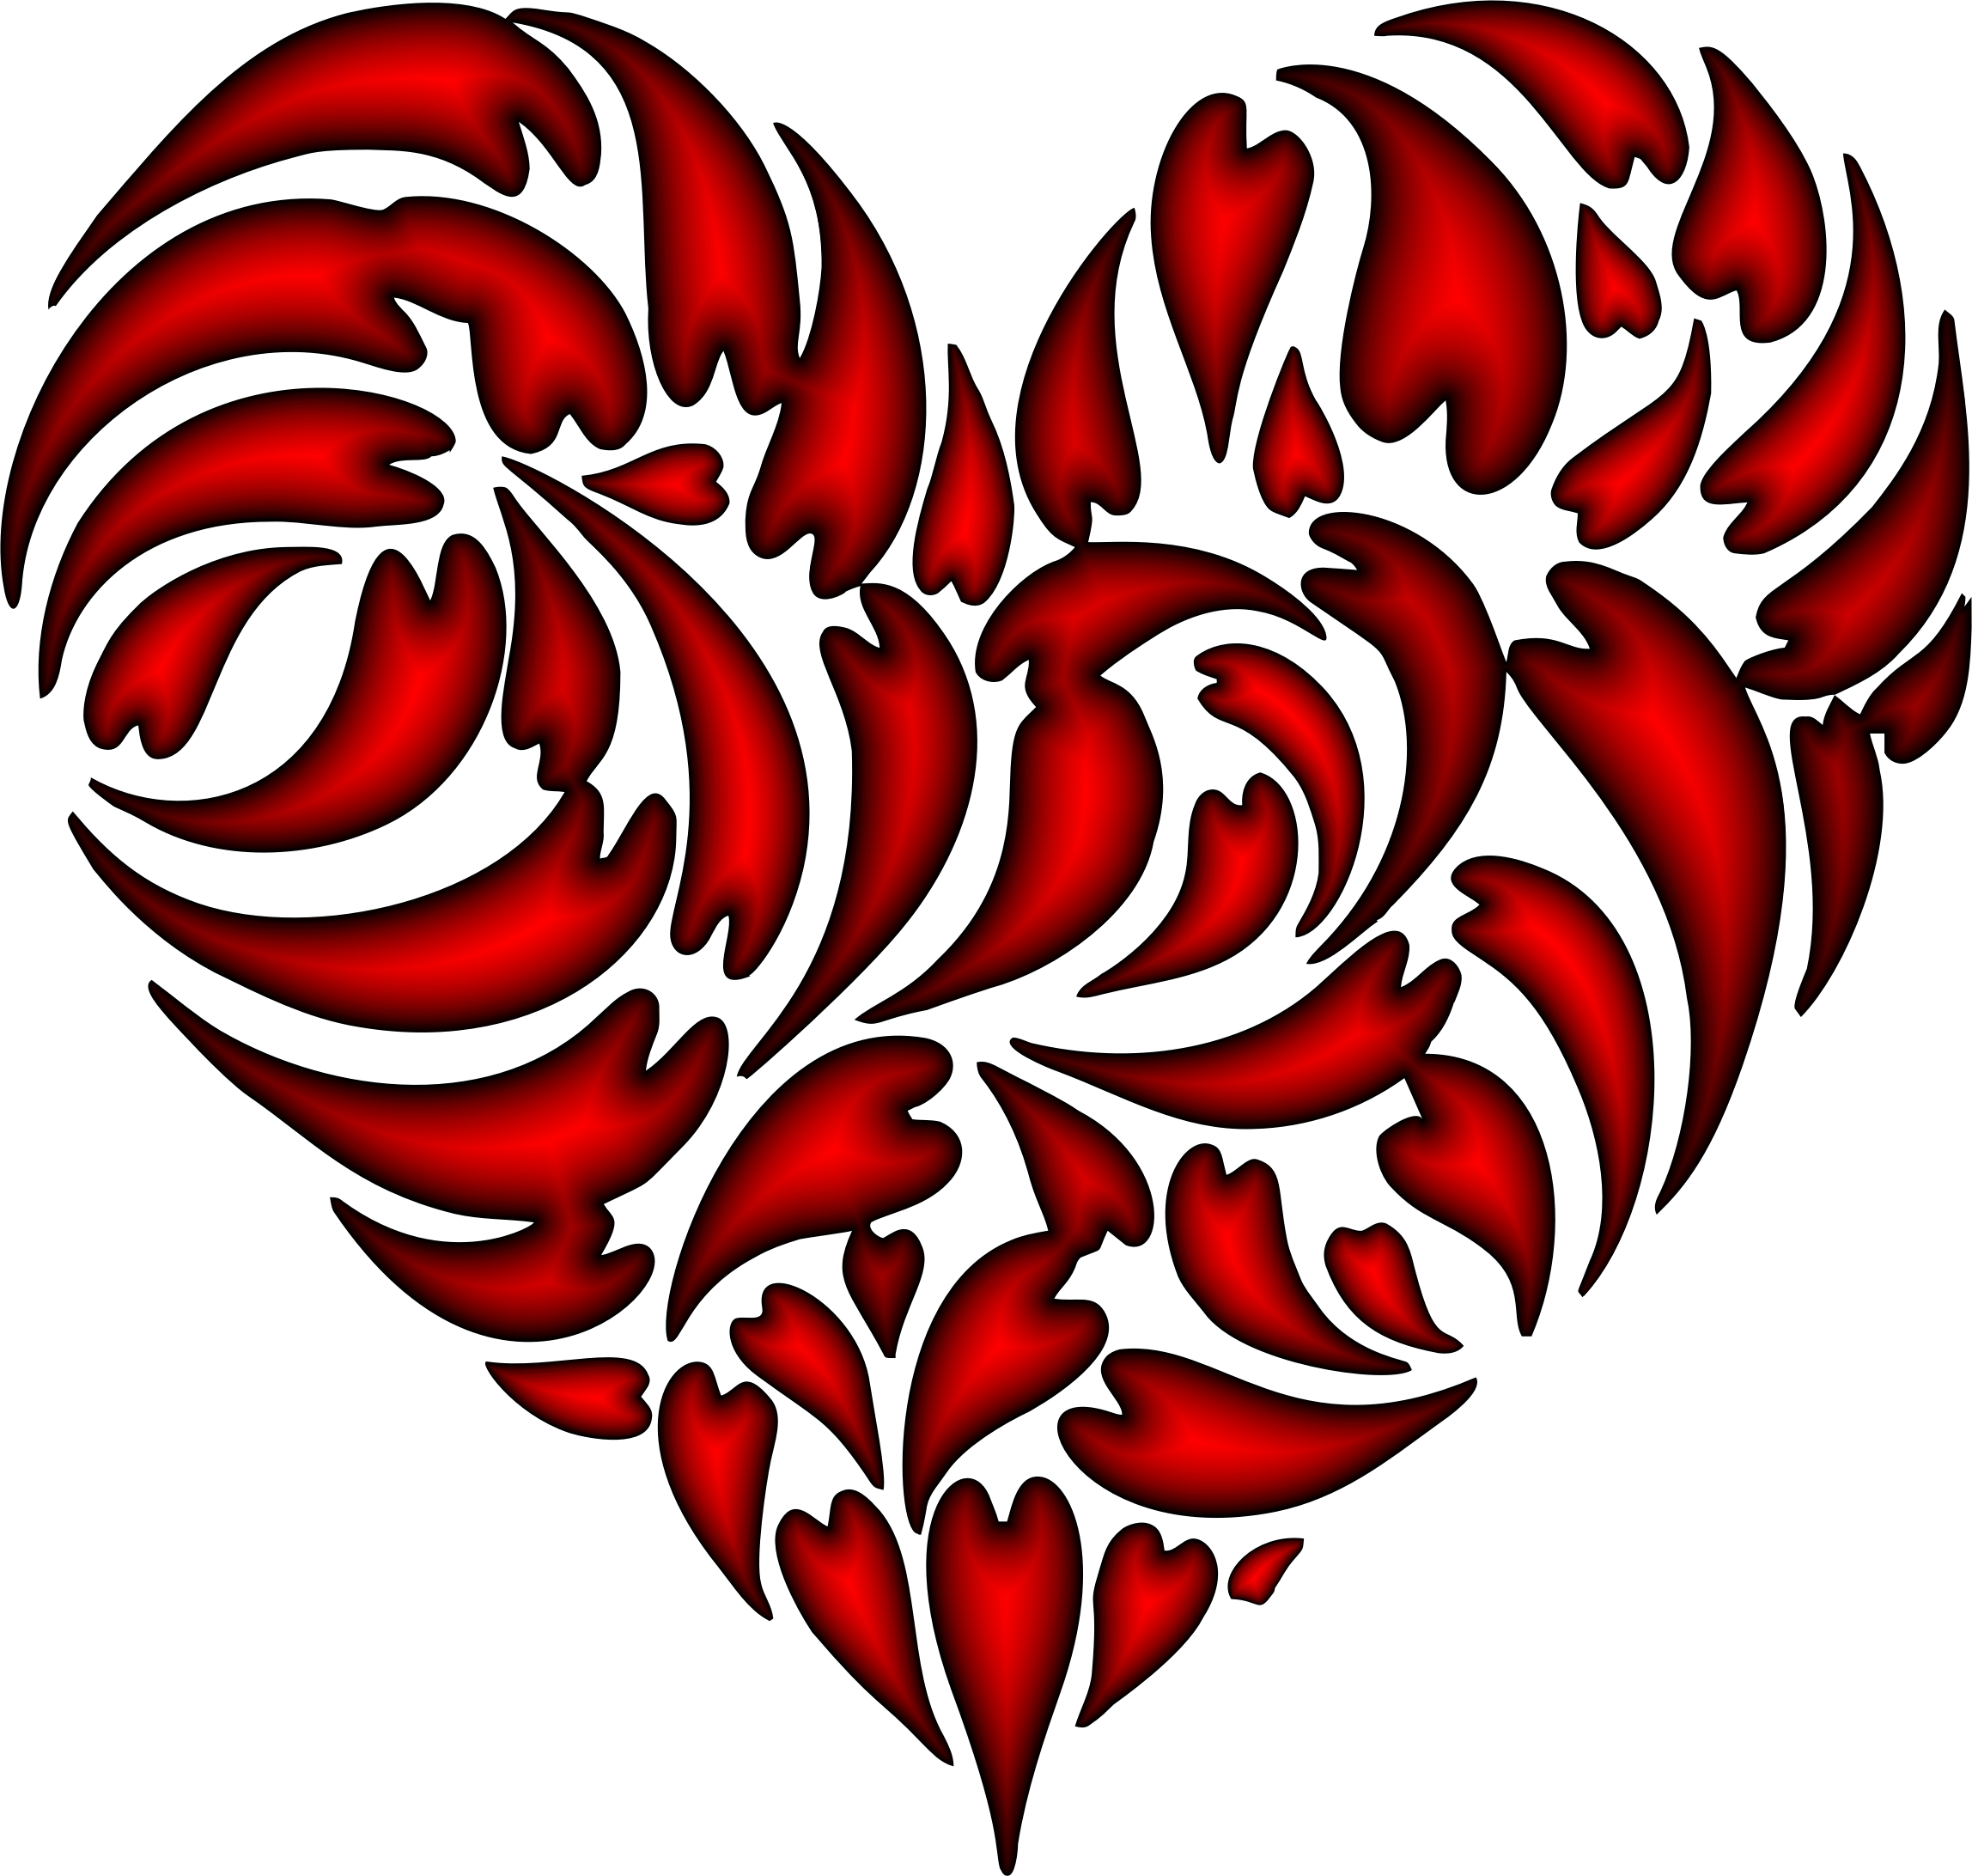 Abstract Distorted Heart Fractal Crimson by GDJ